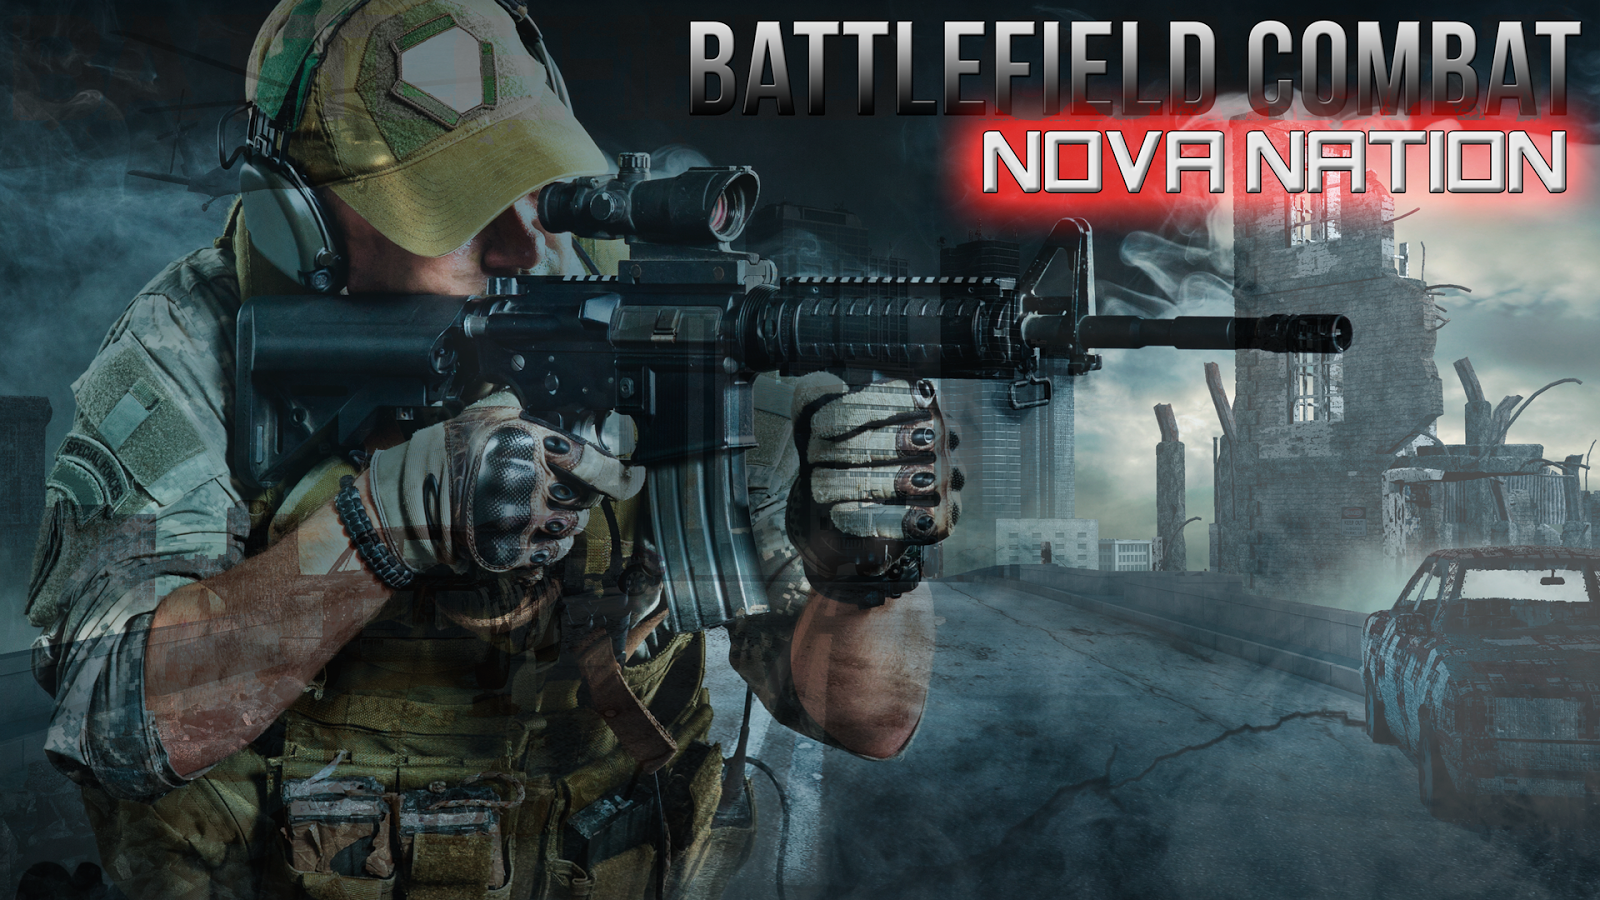 Battlefield Combat Nova Nation Screenshot